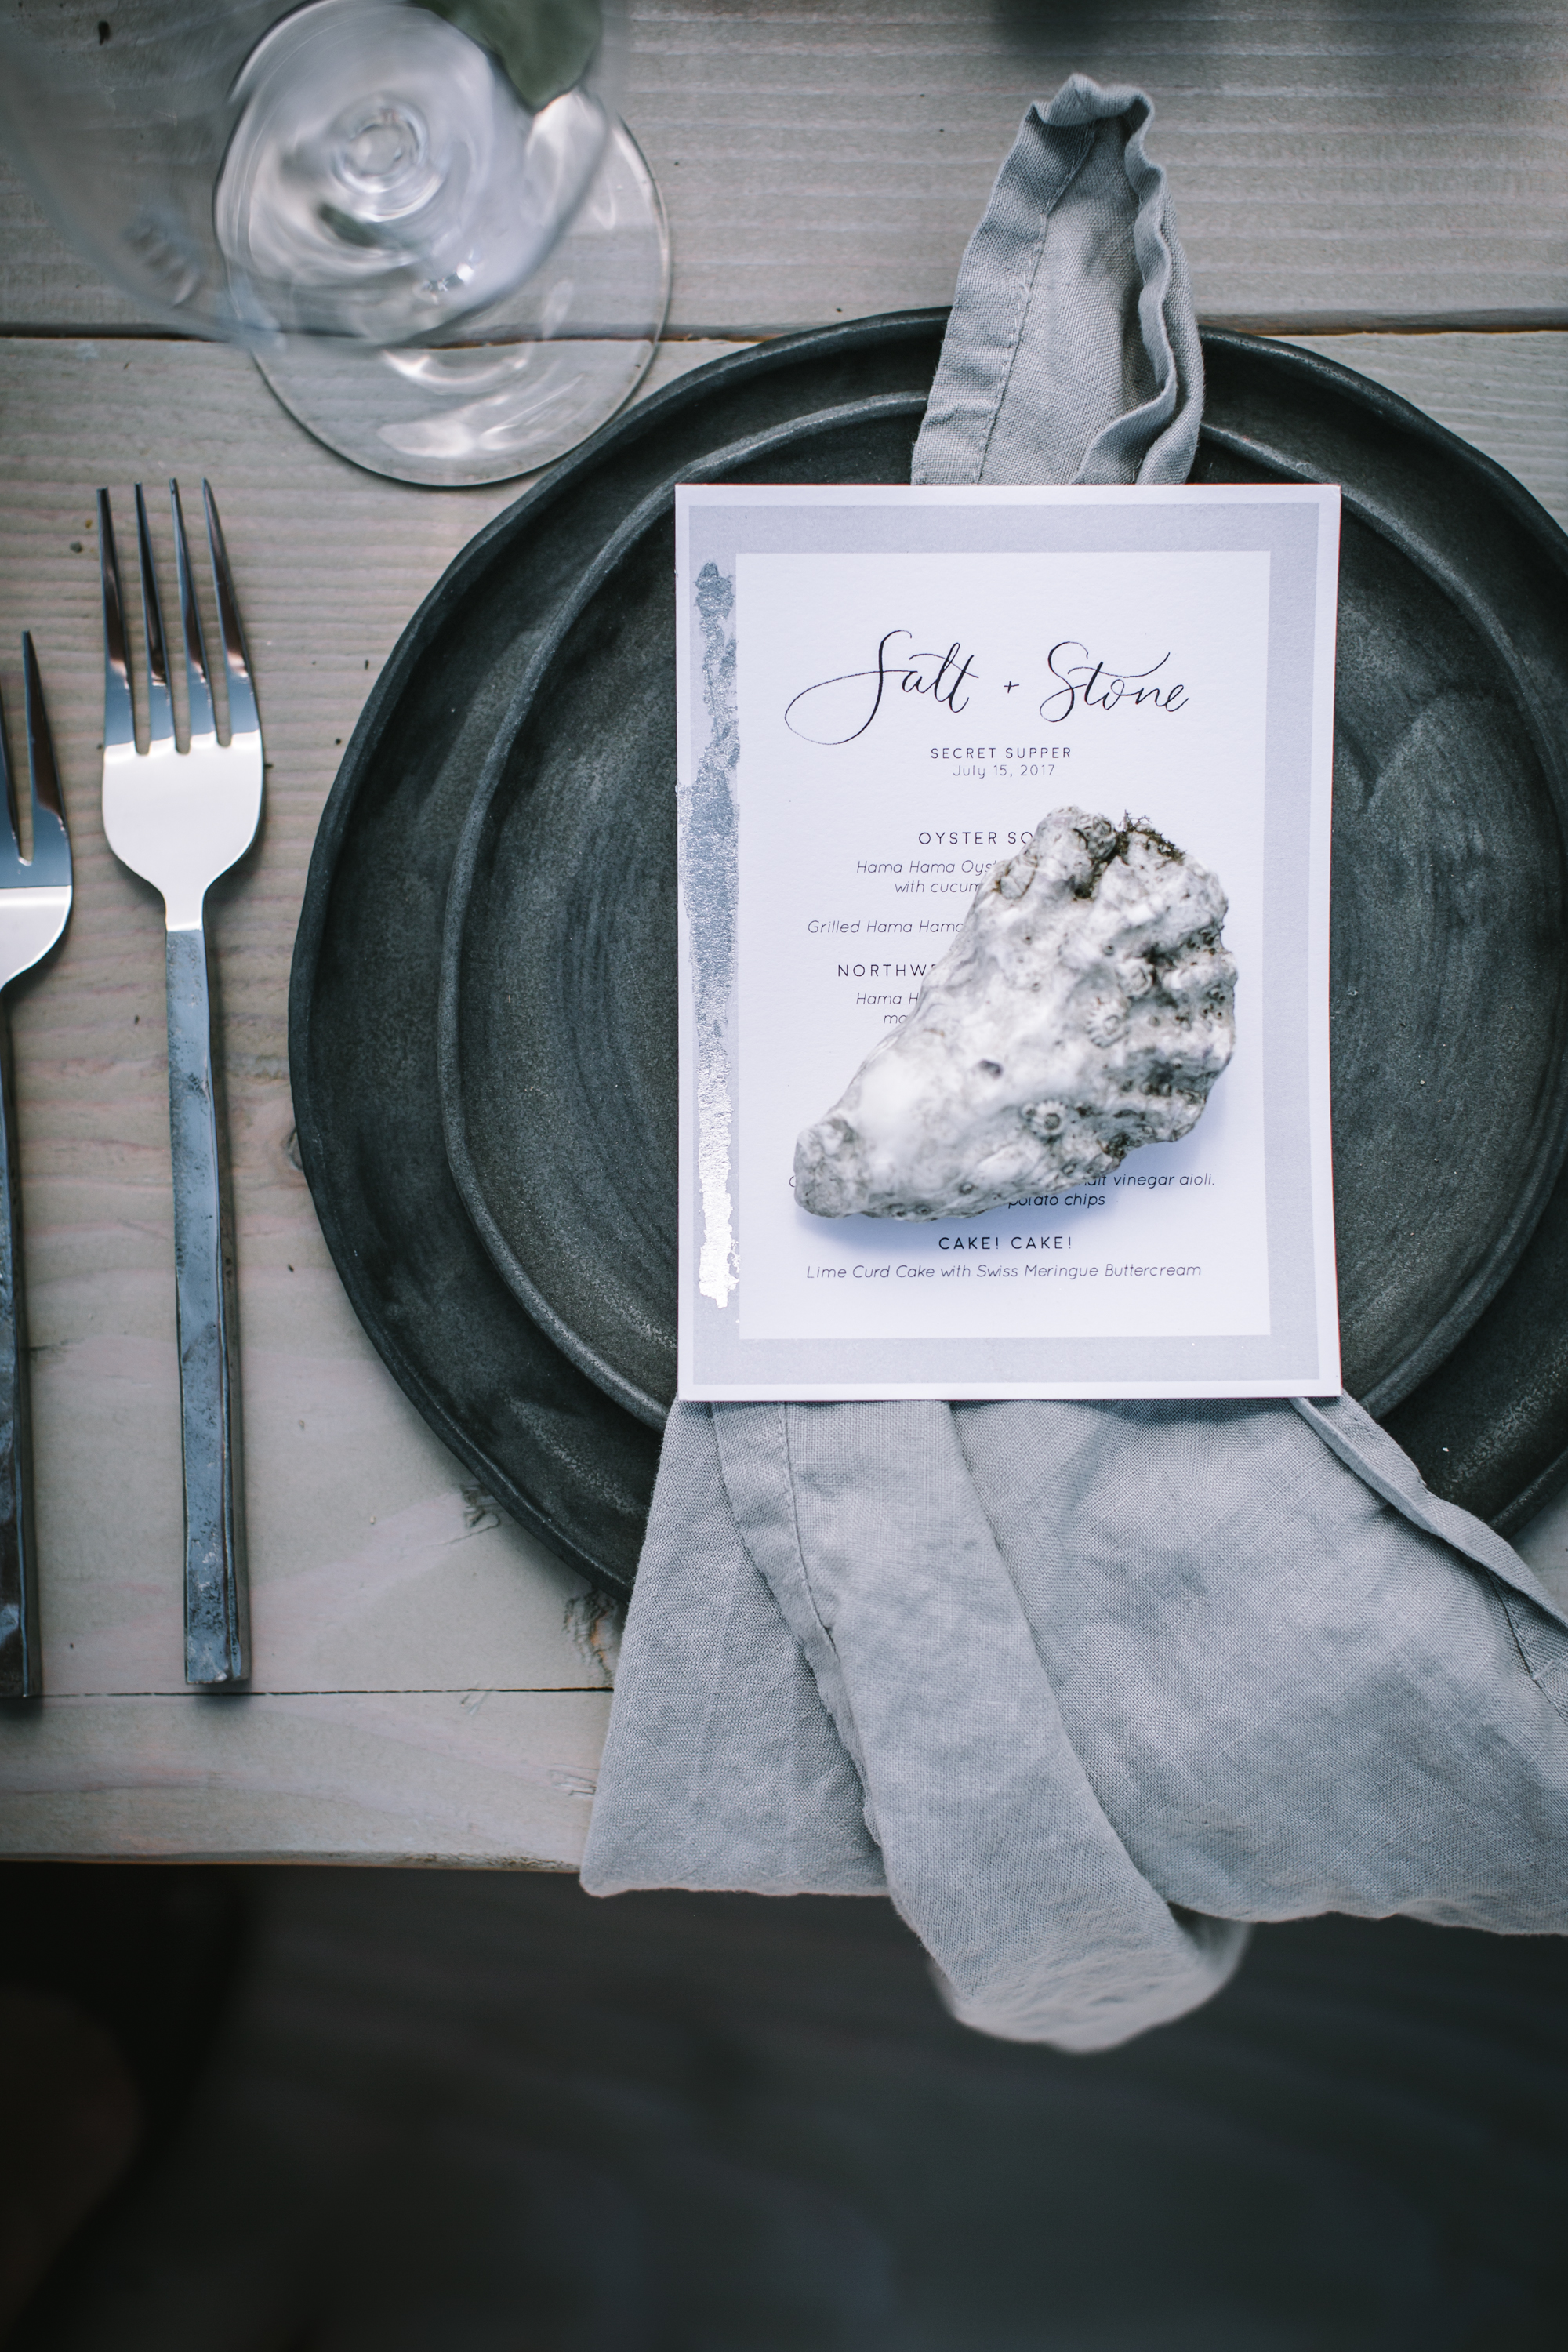 Secret Supper Salt and Stone Menus by Amy Rochelle Press